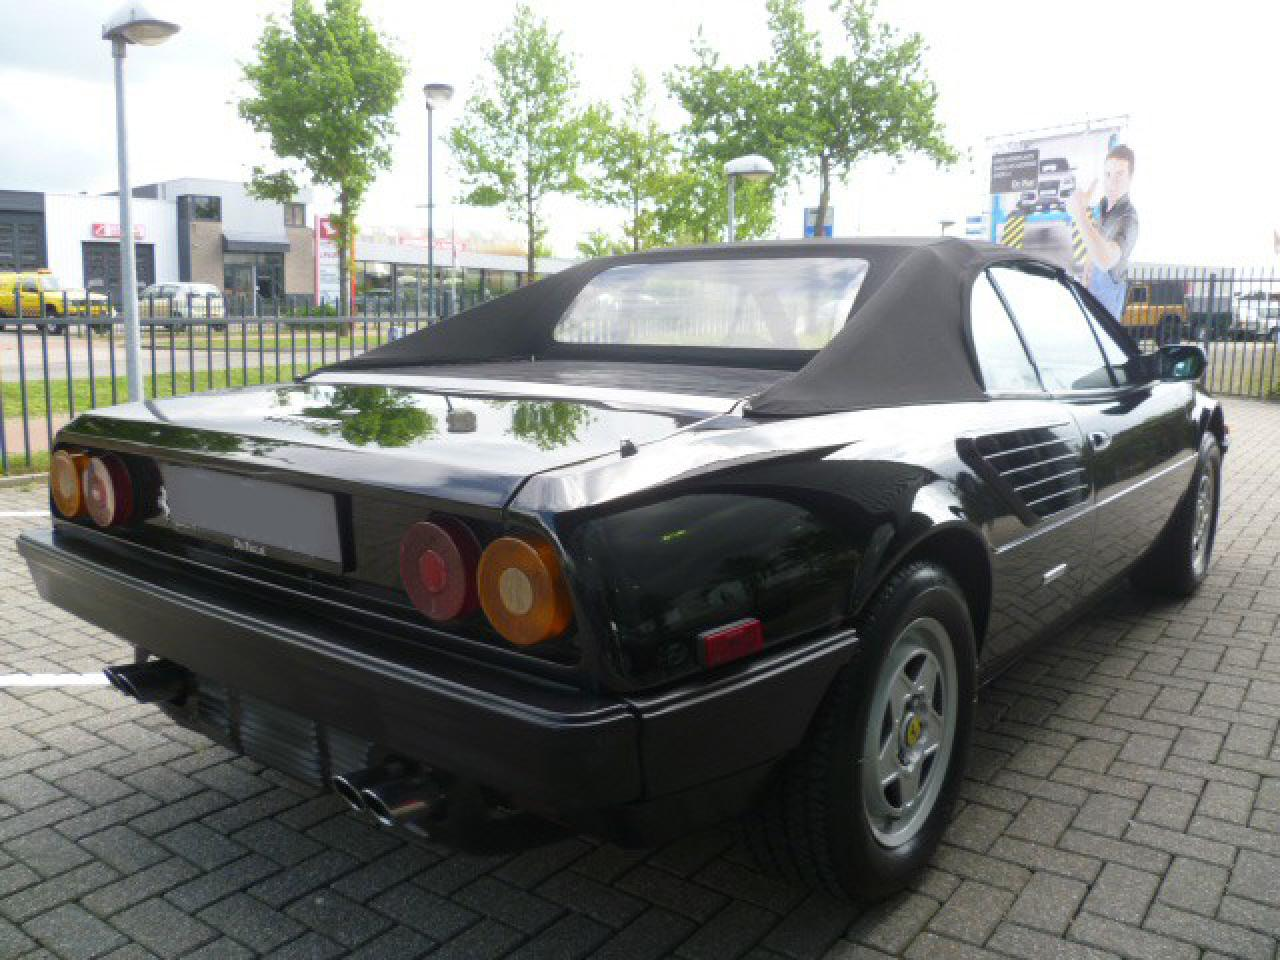 ferrari mondial cabrio 3 0 quattrovalvole 1985 verkocht fotografie delameillieure. Black Bedroom Furniture Sets. Home Design Ideas